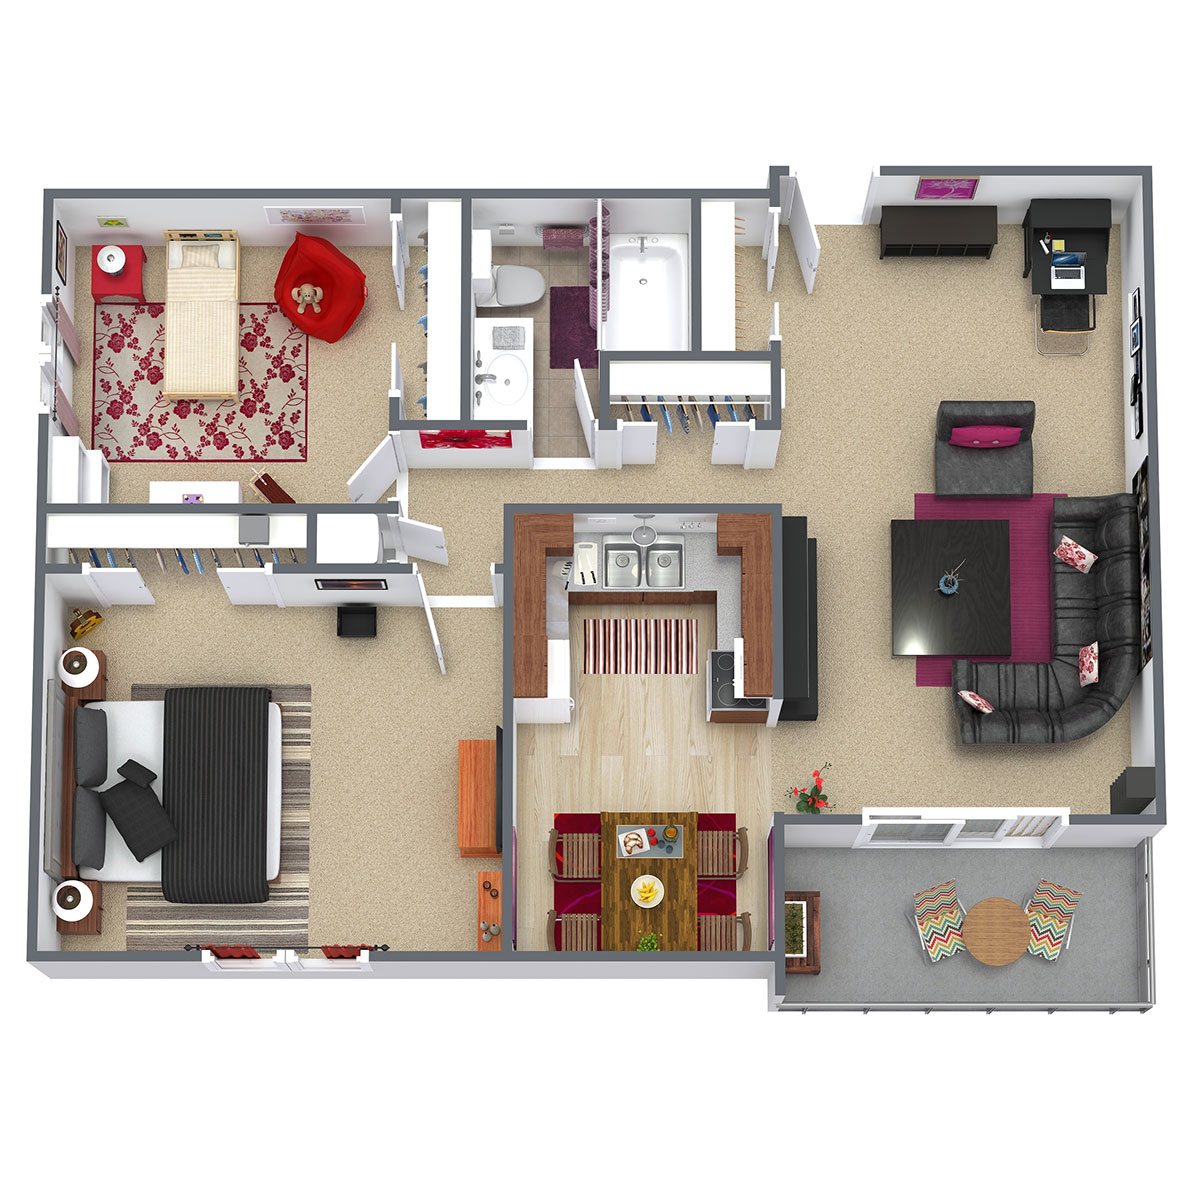 Floorplan - 2 Bedroom / 1 Bath image